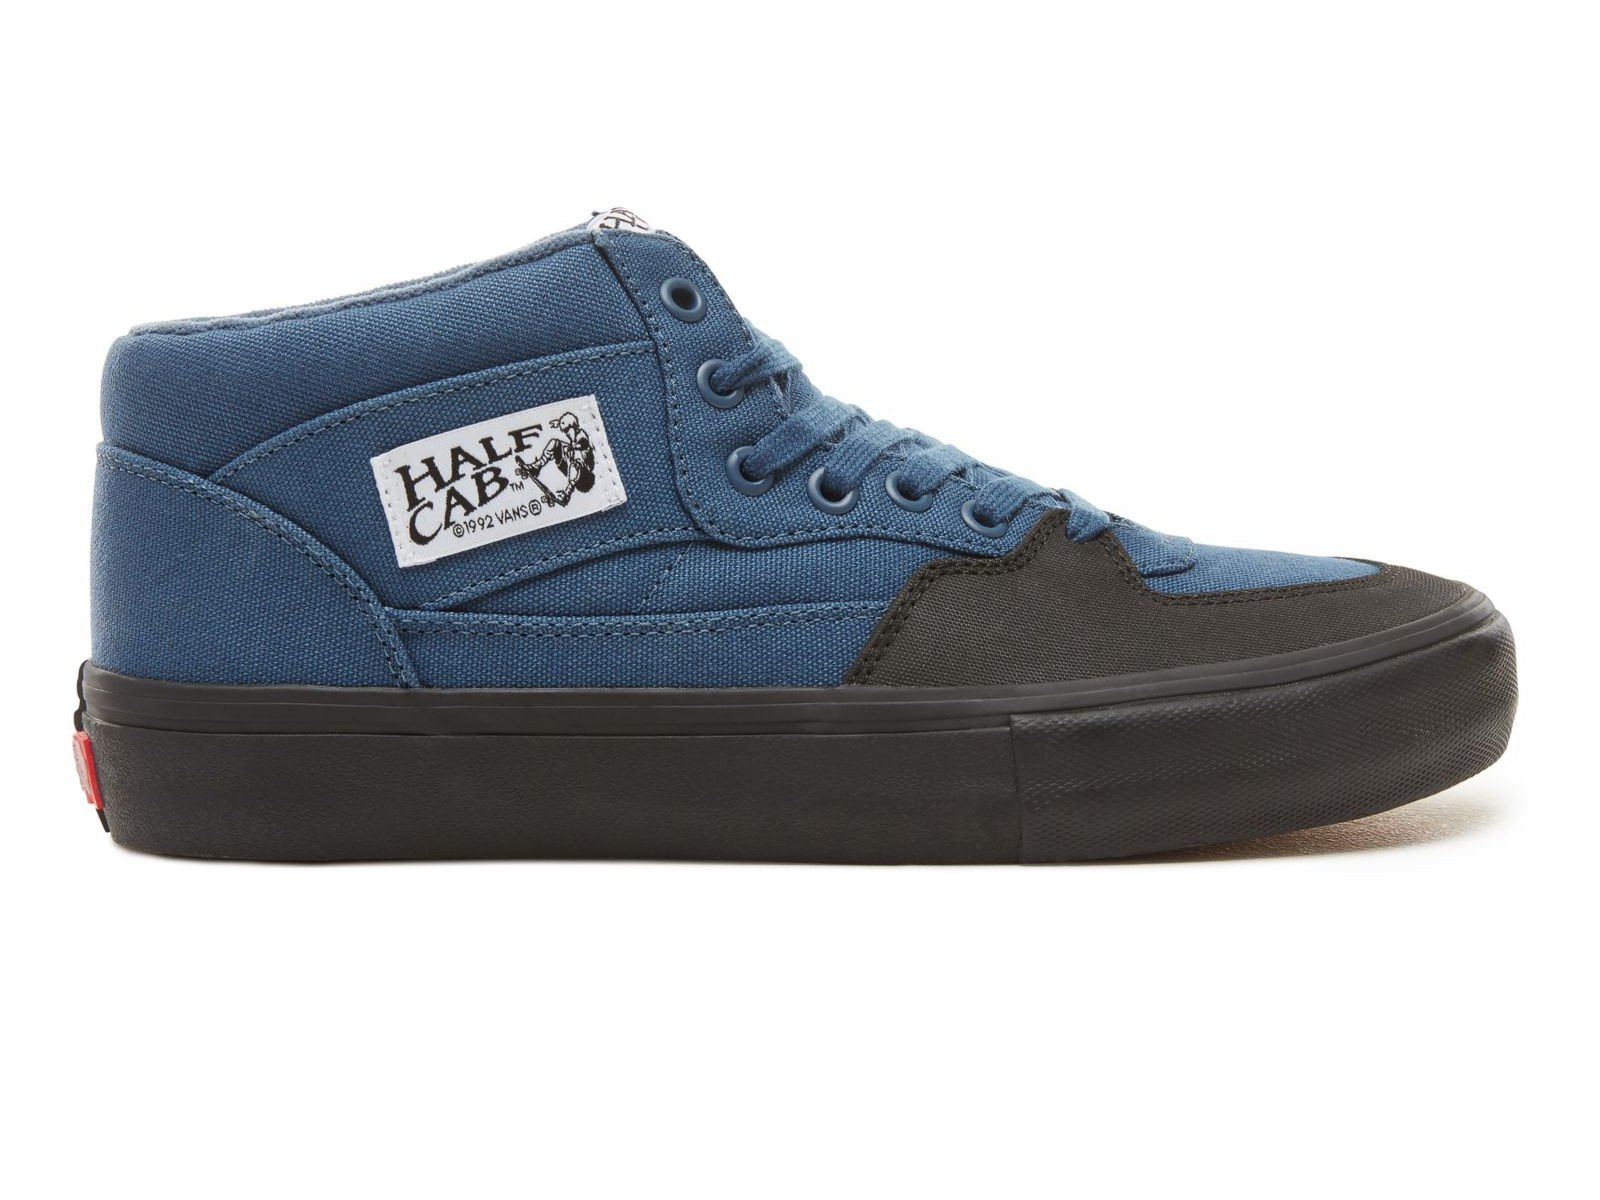 Vans Half Cab Pro Shoes X Tuff Dark Denim Black